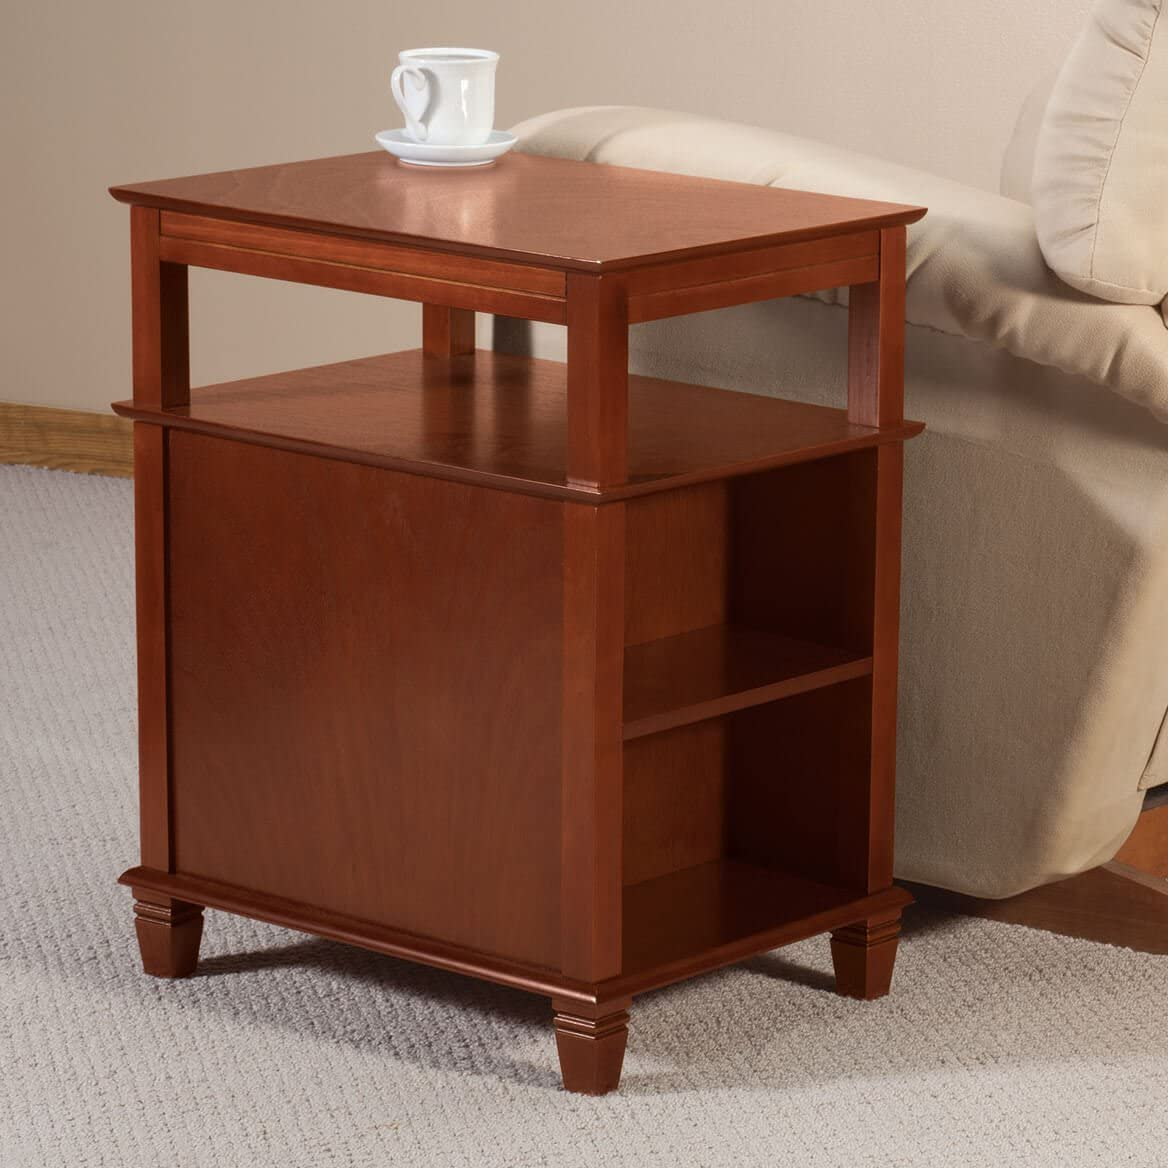 Miles Kimball Appleton Recliner Table by OakRidge with Slide-Out Shelf Mahogany